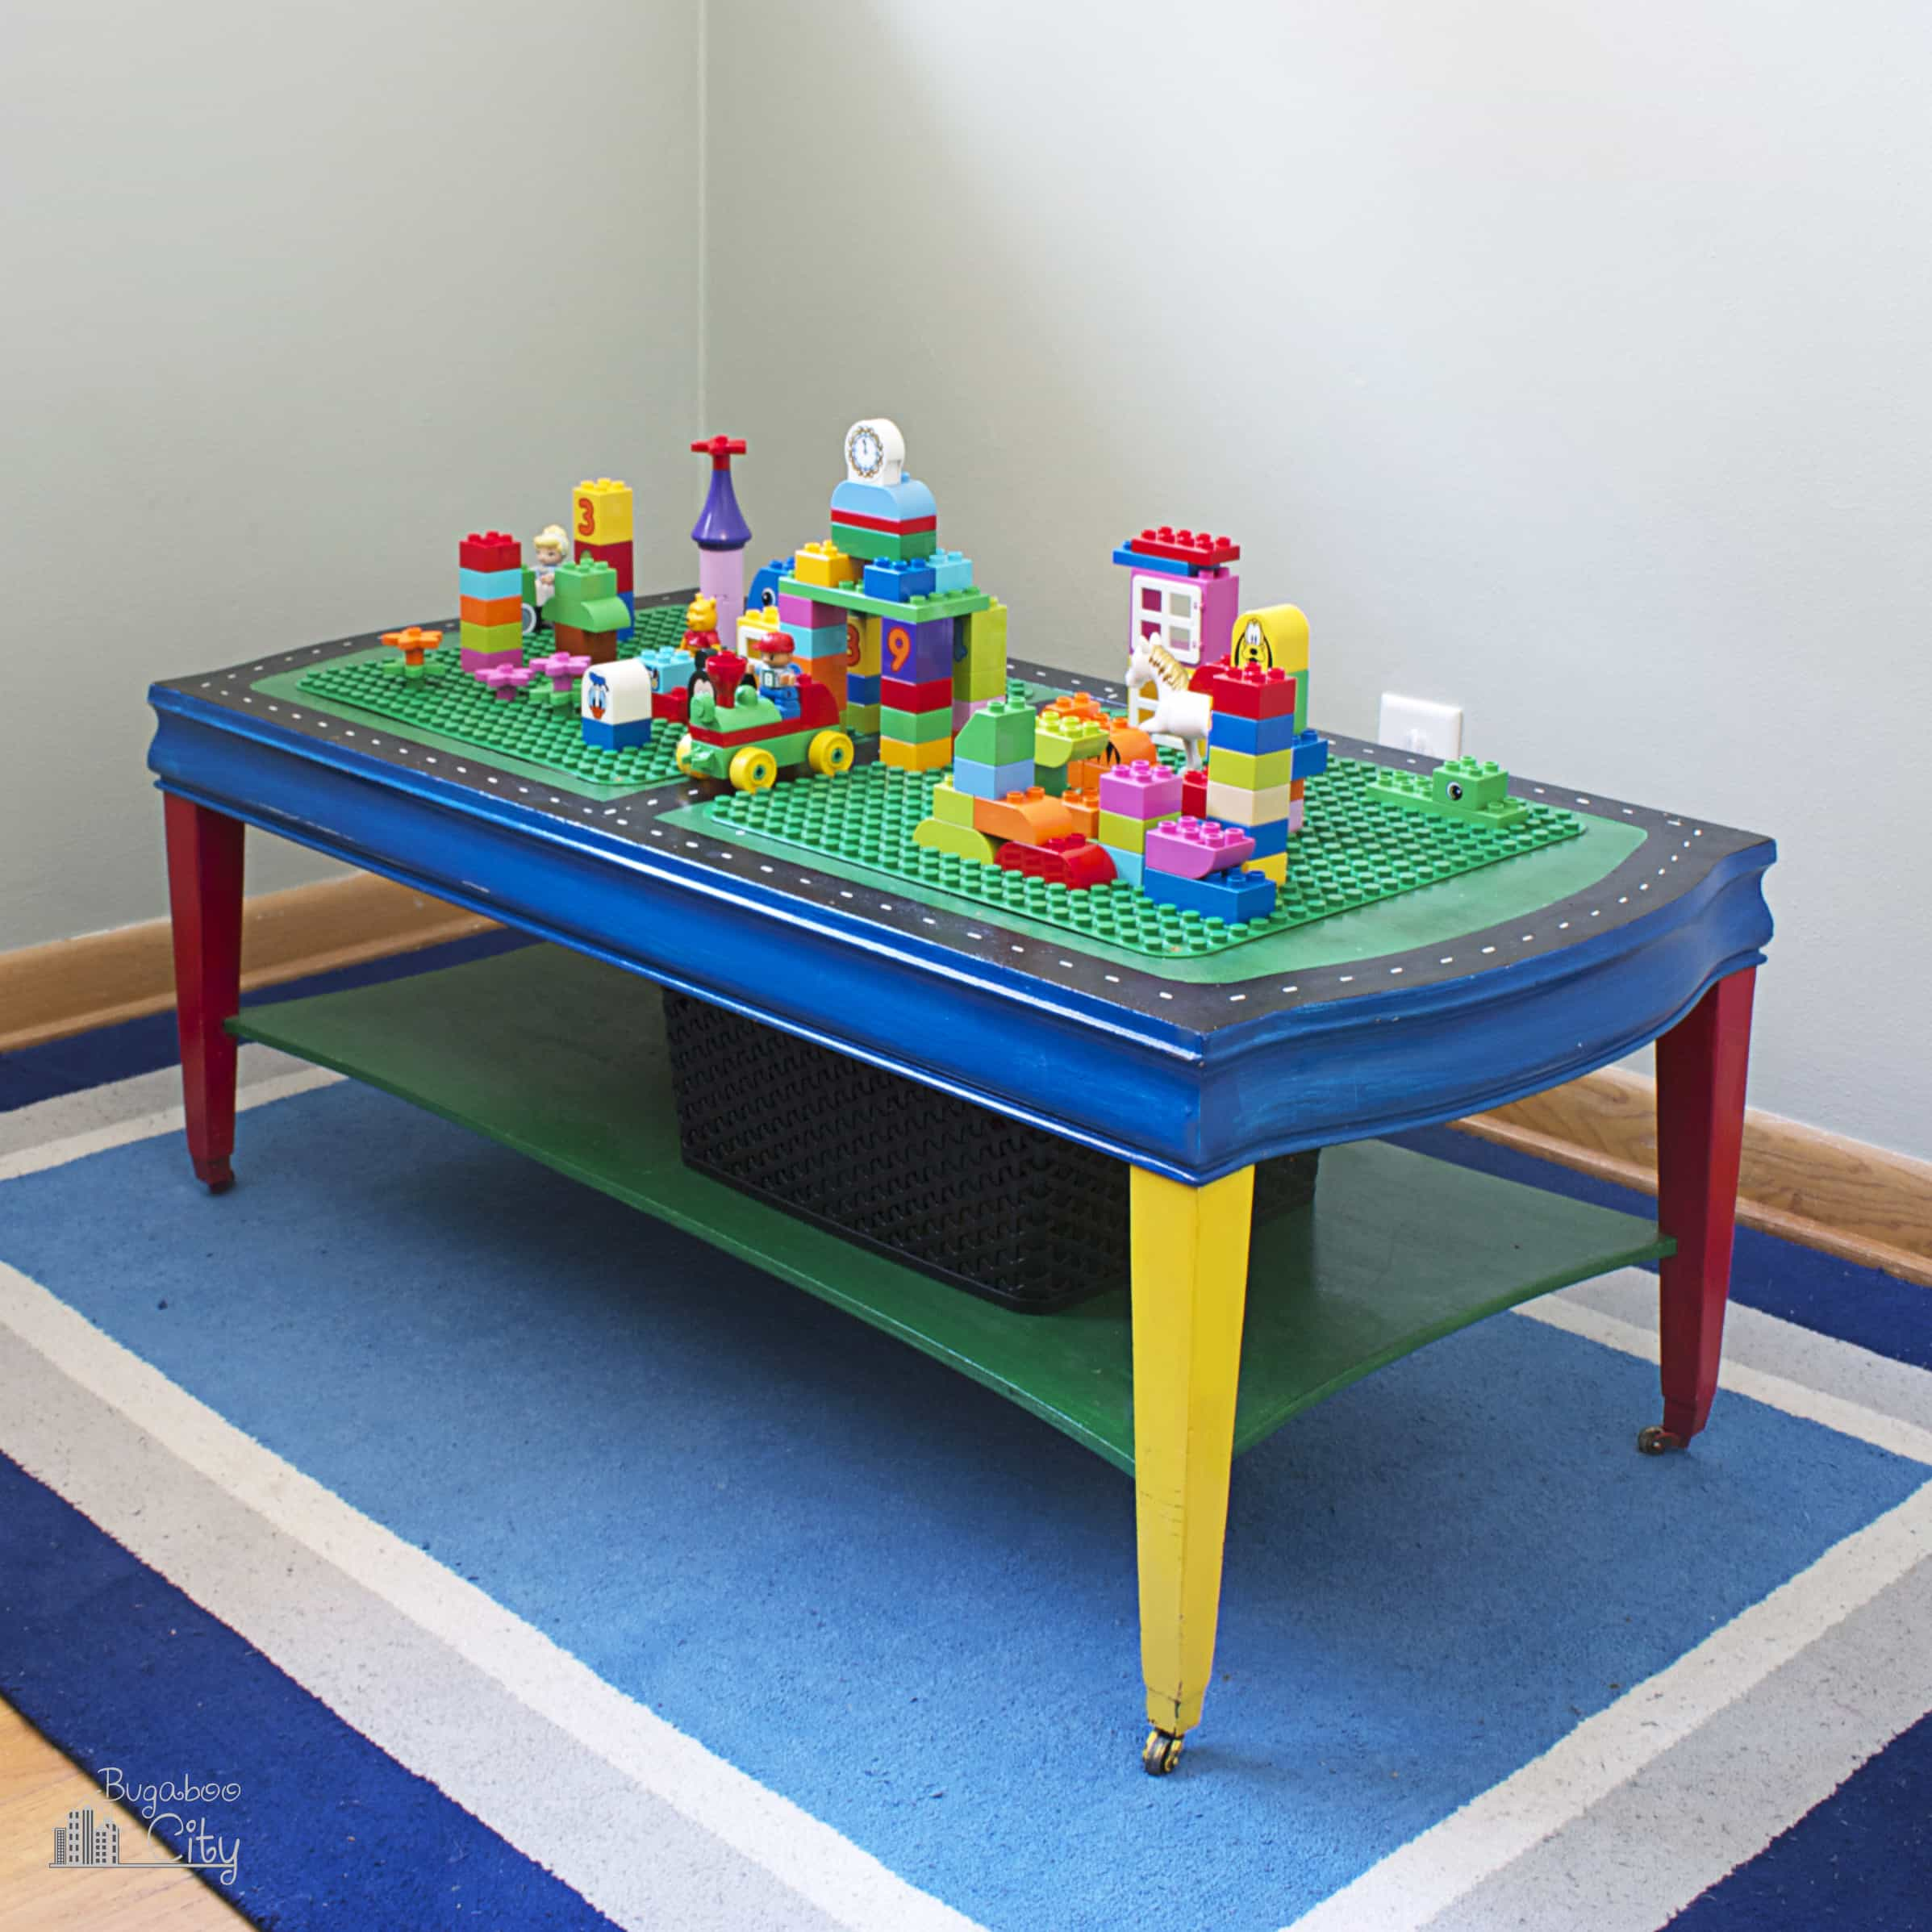 Colorful coffee table with LEGOS on a blue rug.